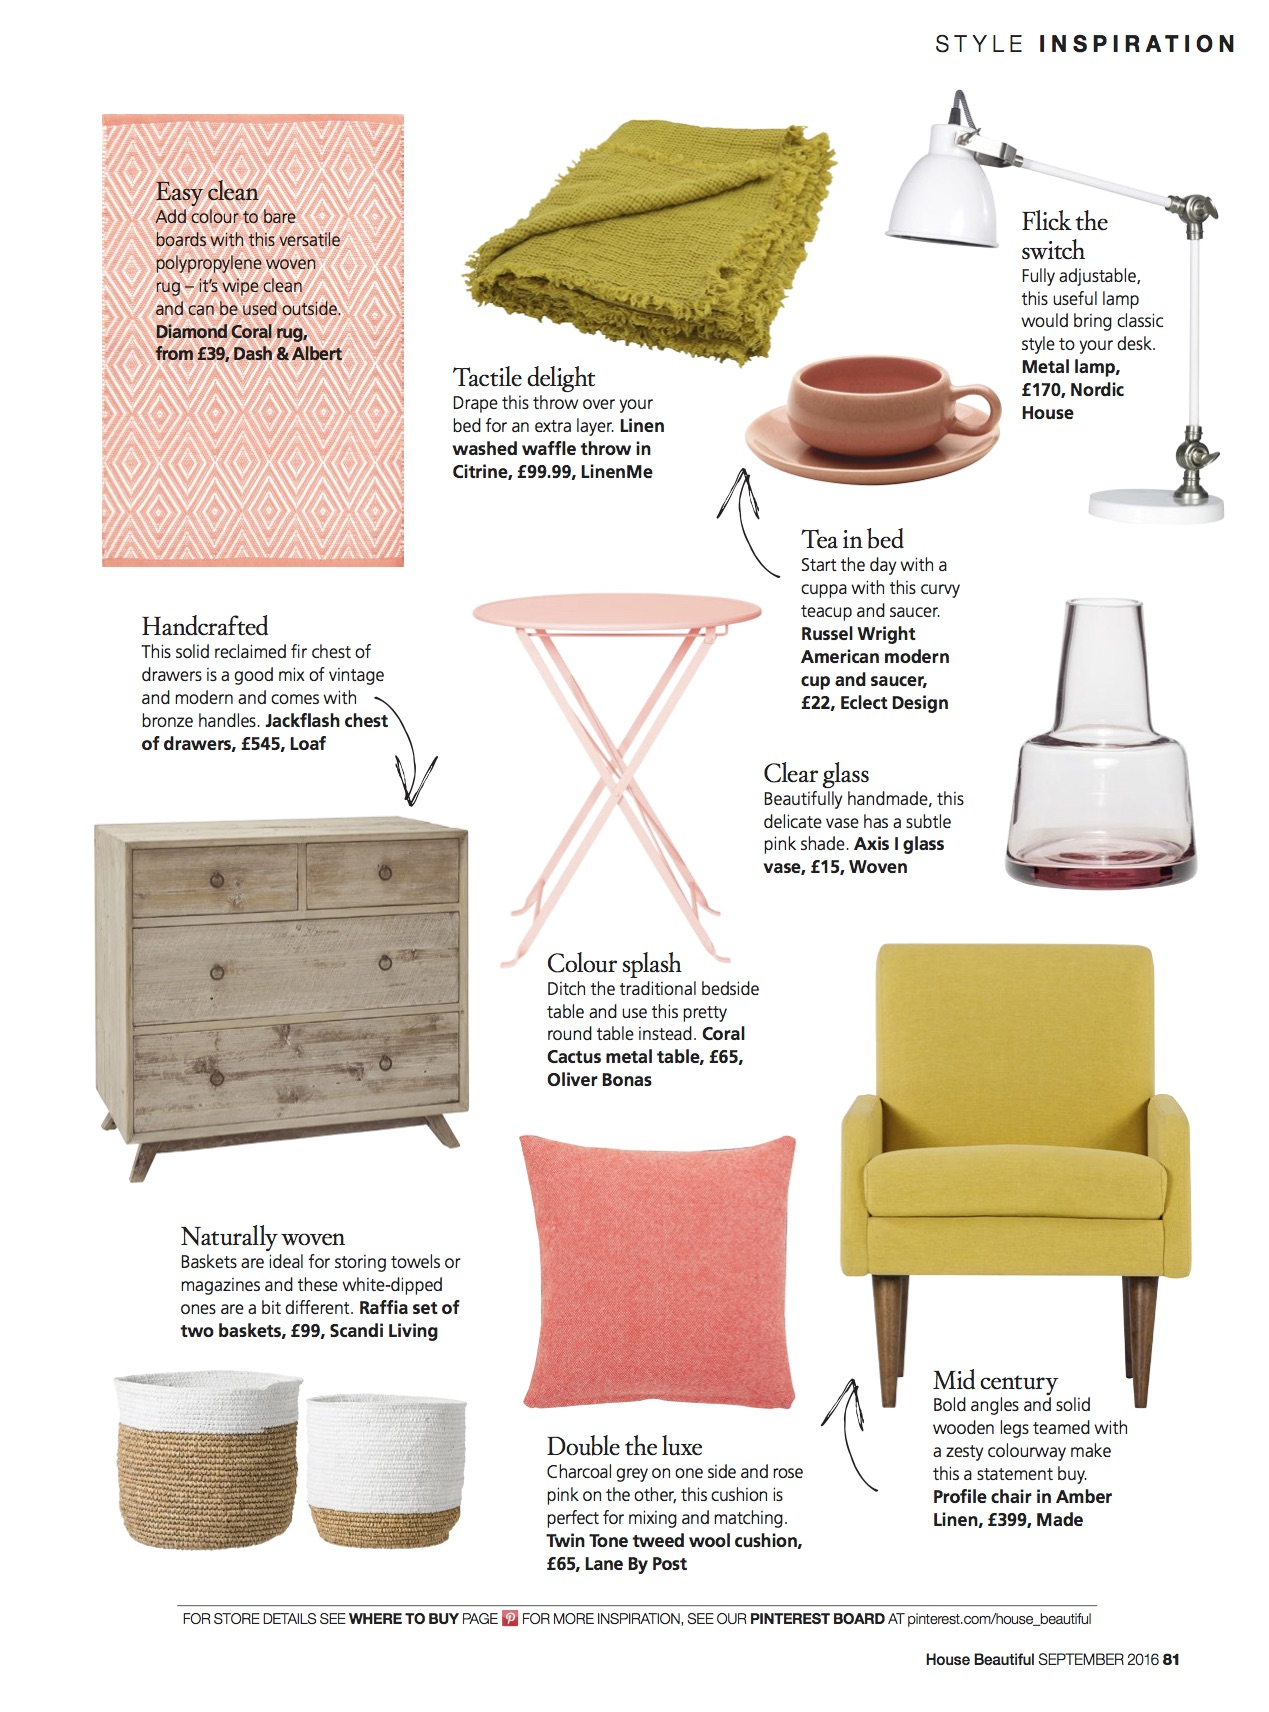 Lane Twin Tone Cushion in Rosie Pink for House Beautiful Magazine 'Moodboard Masterclass', September 2016